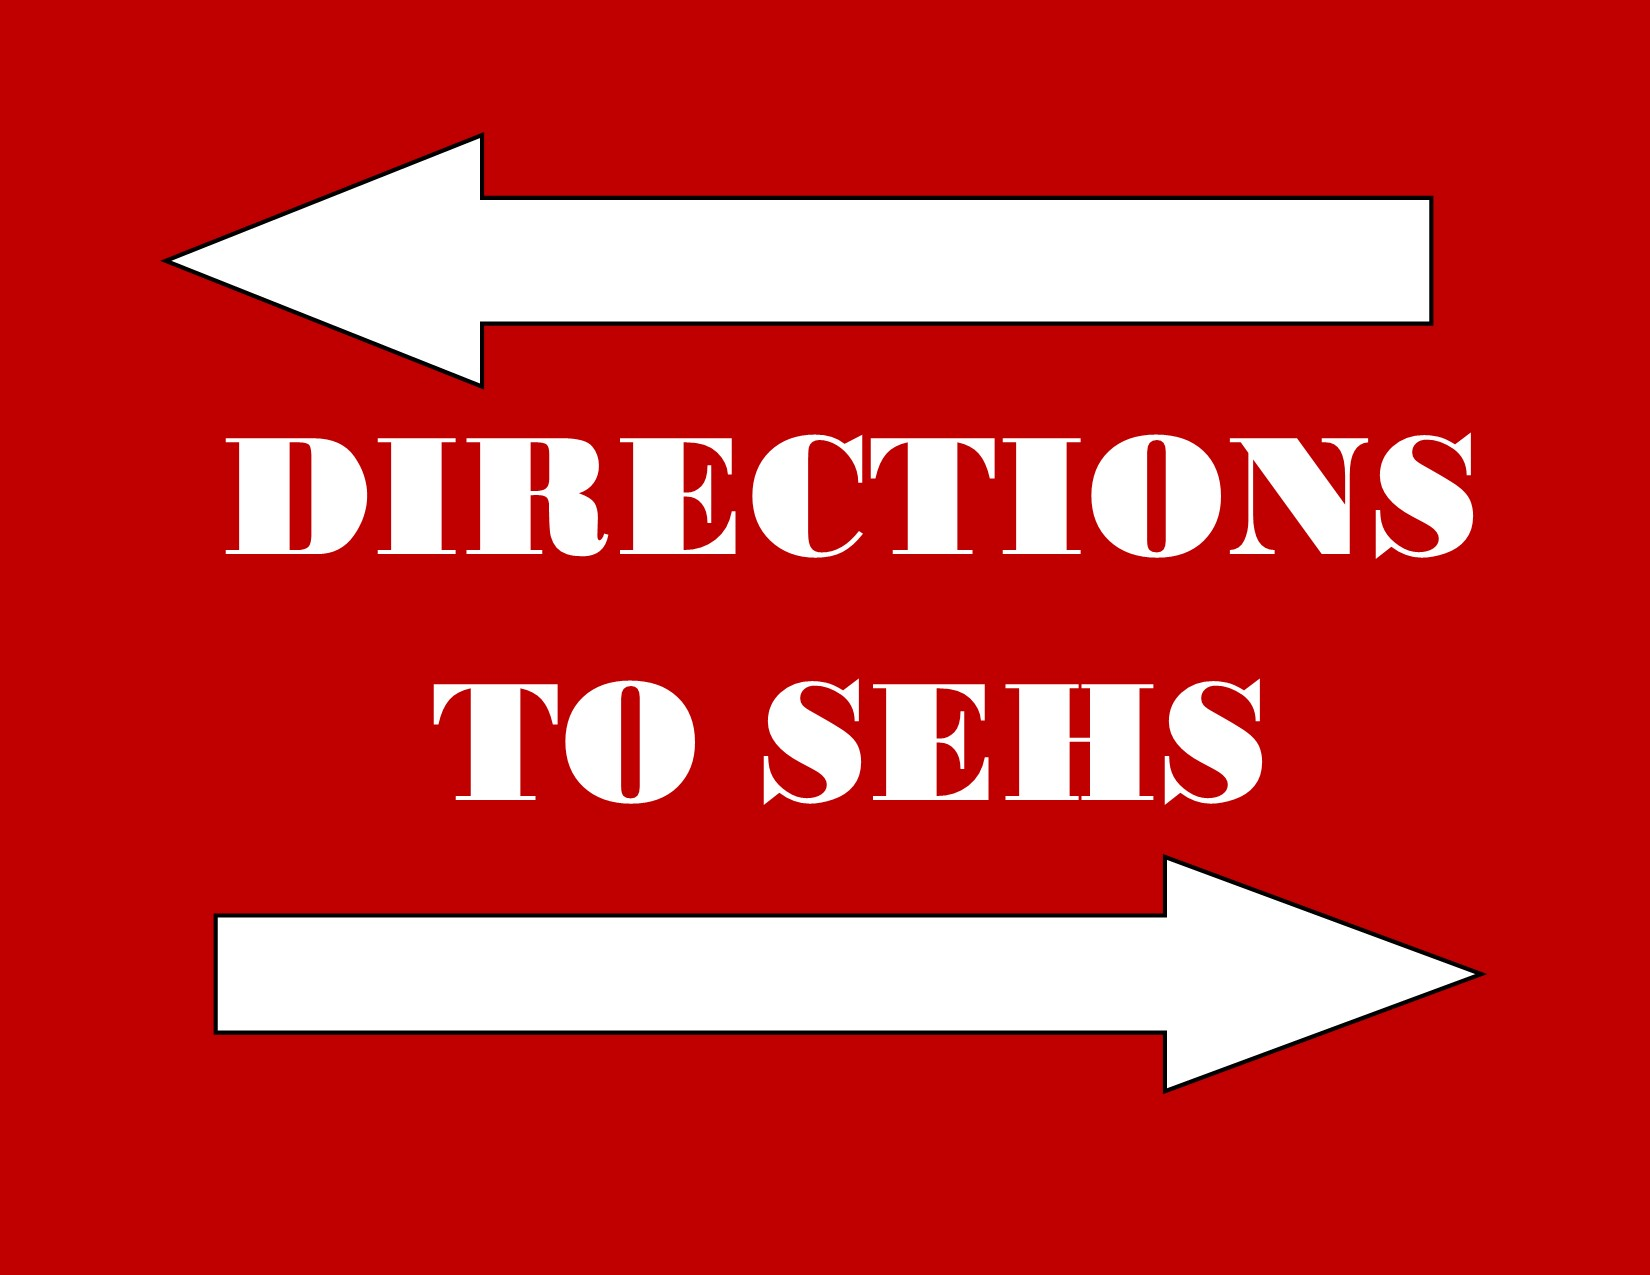 DIRECTIONS TO SEHS